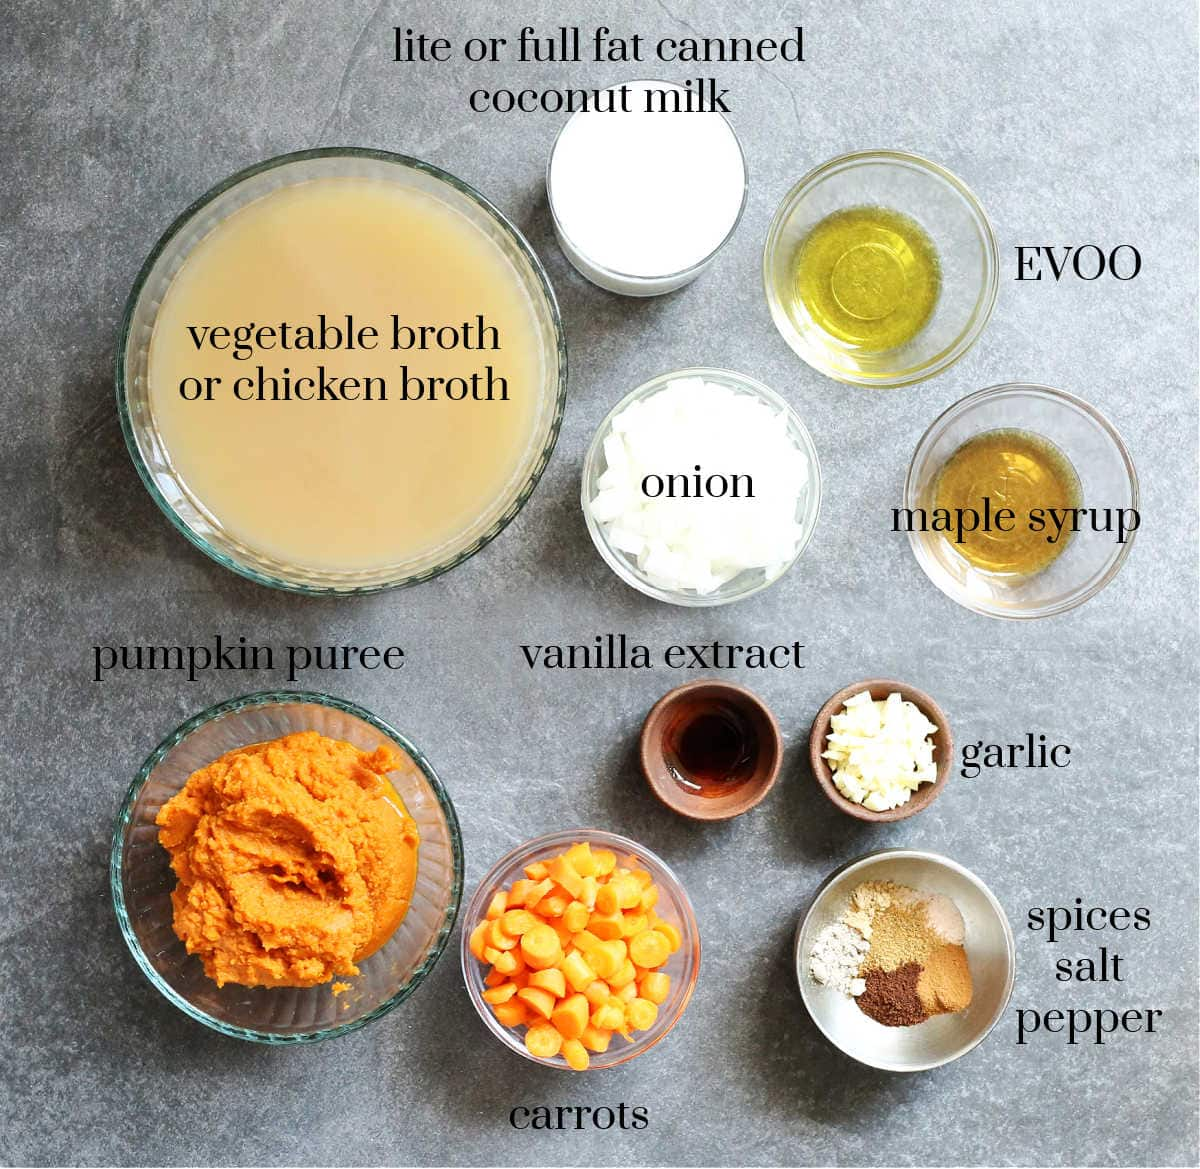 ingredients to make a healthy easy pumpkin soup recipe with pumpkin puree